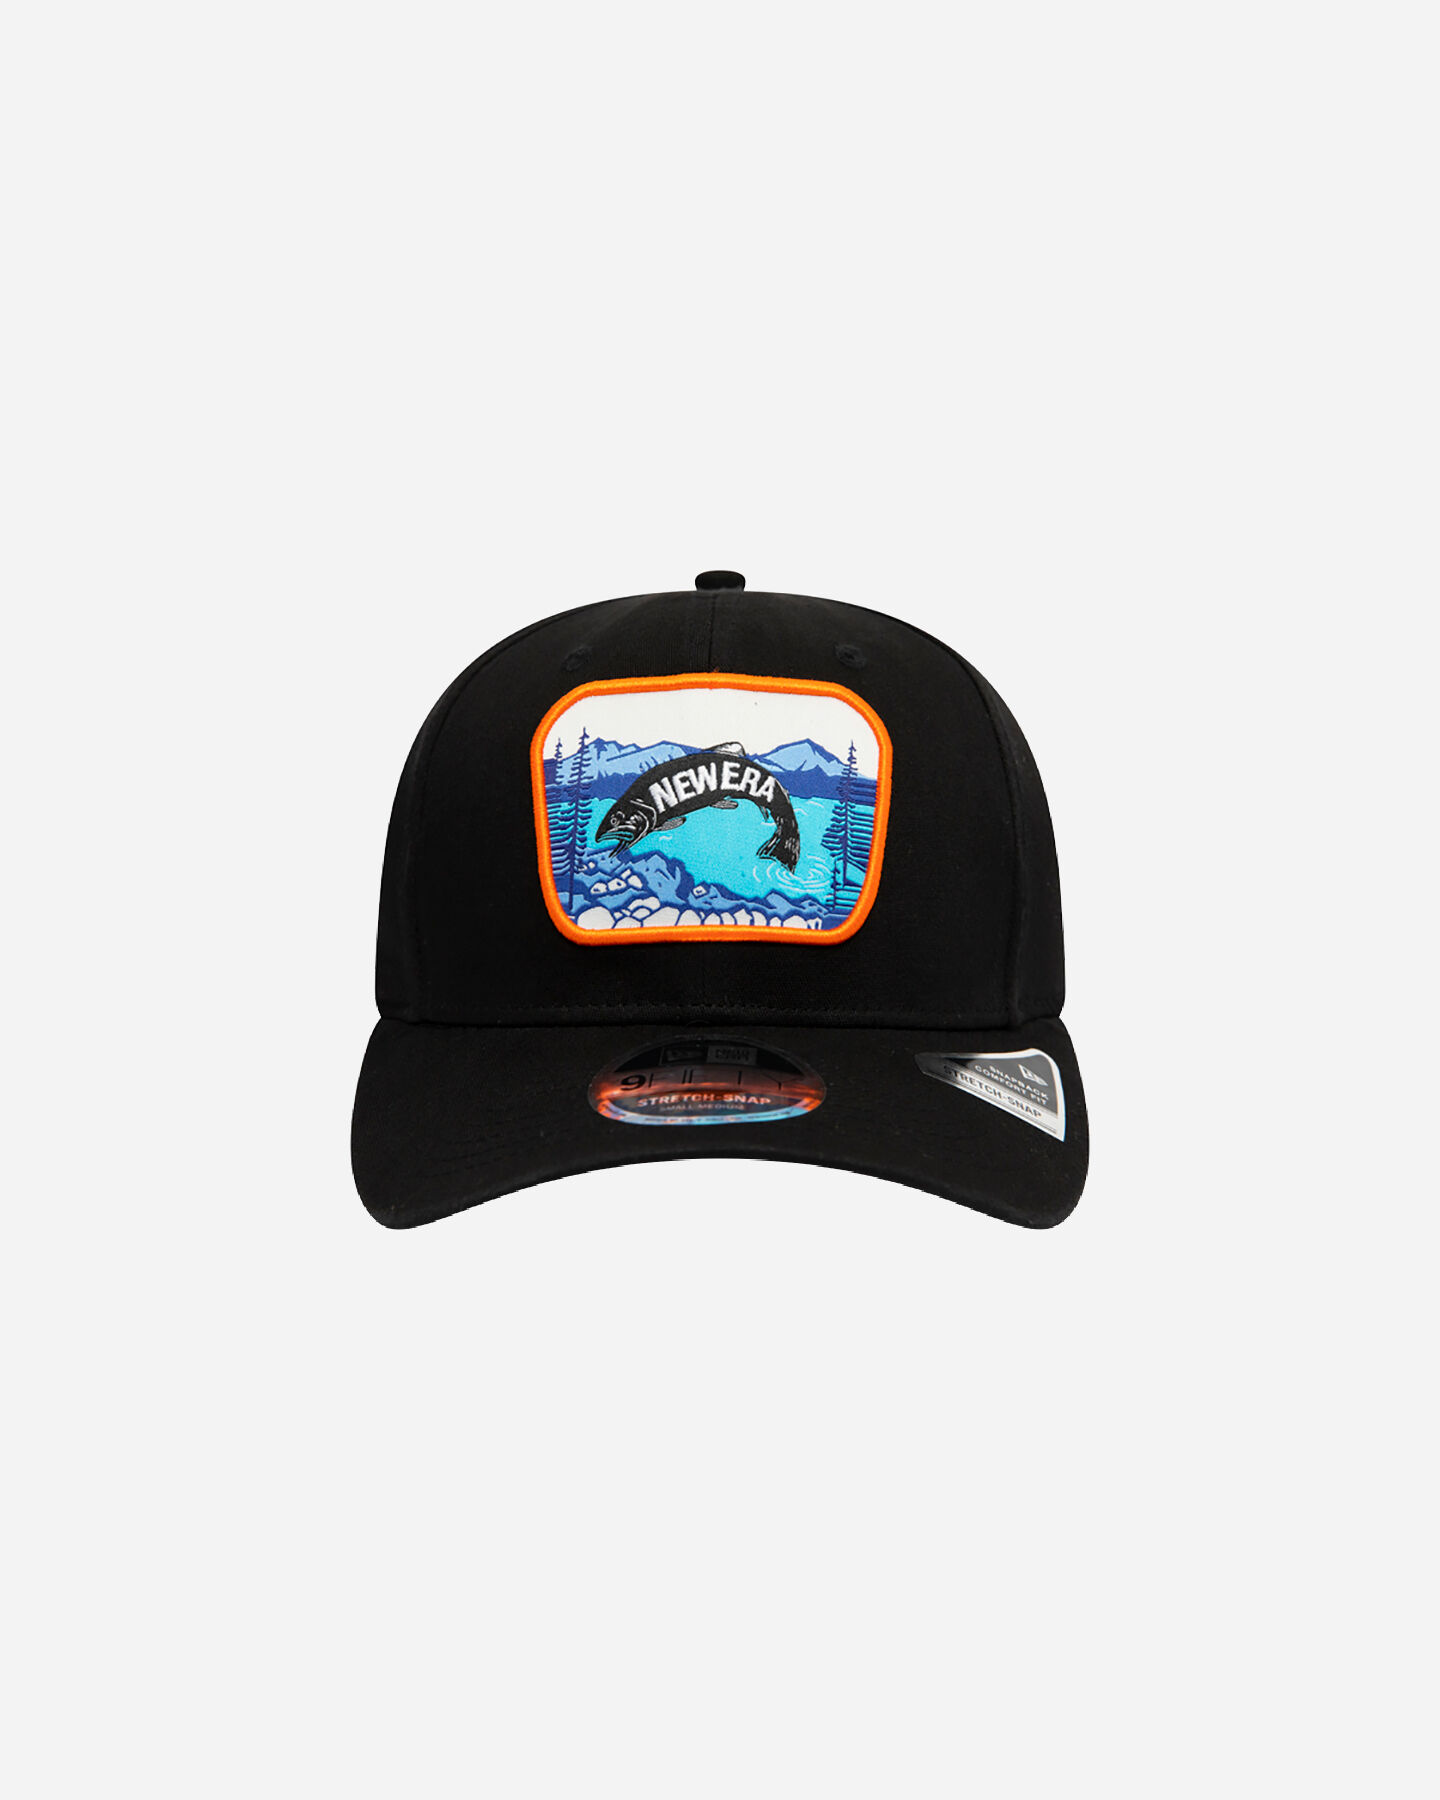 Cappellino NEW ERA 9FIFTY STRETCH SNAP OUTDOOR  S5238824 scatto 1